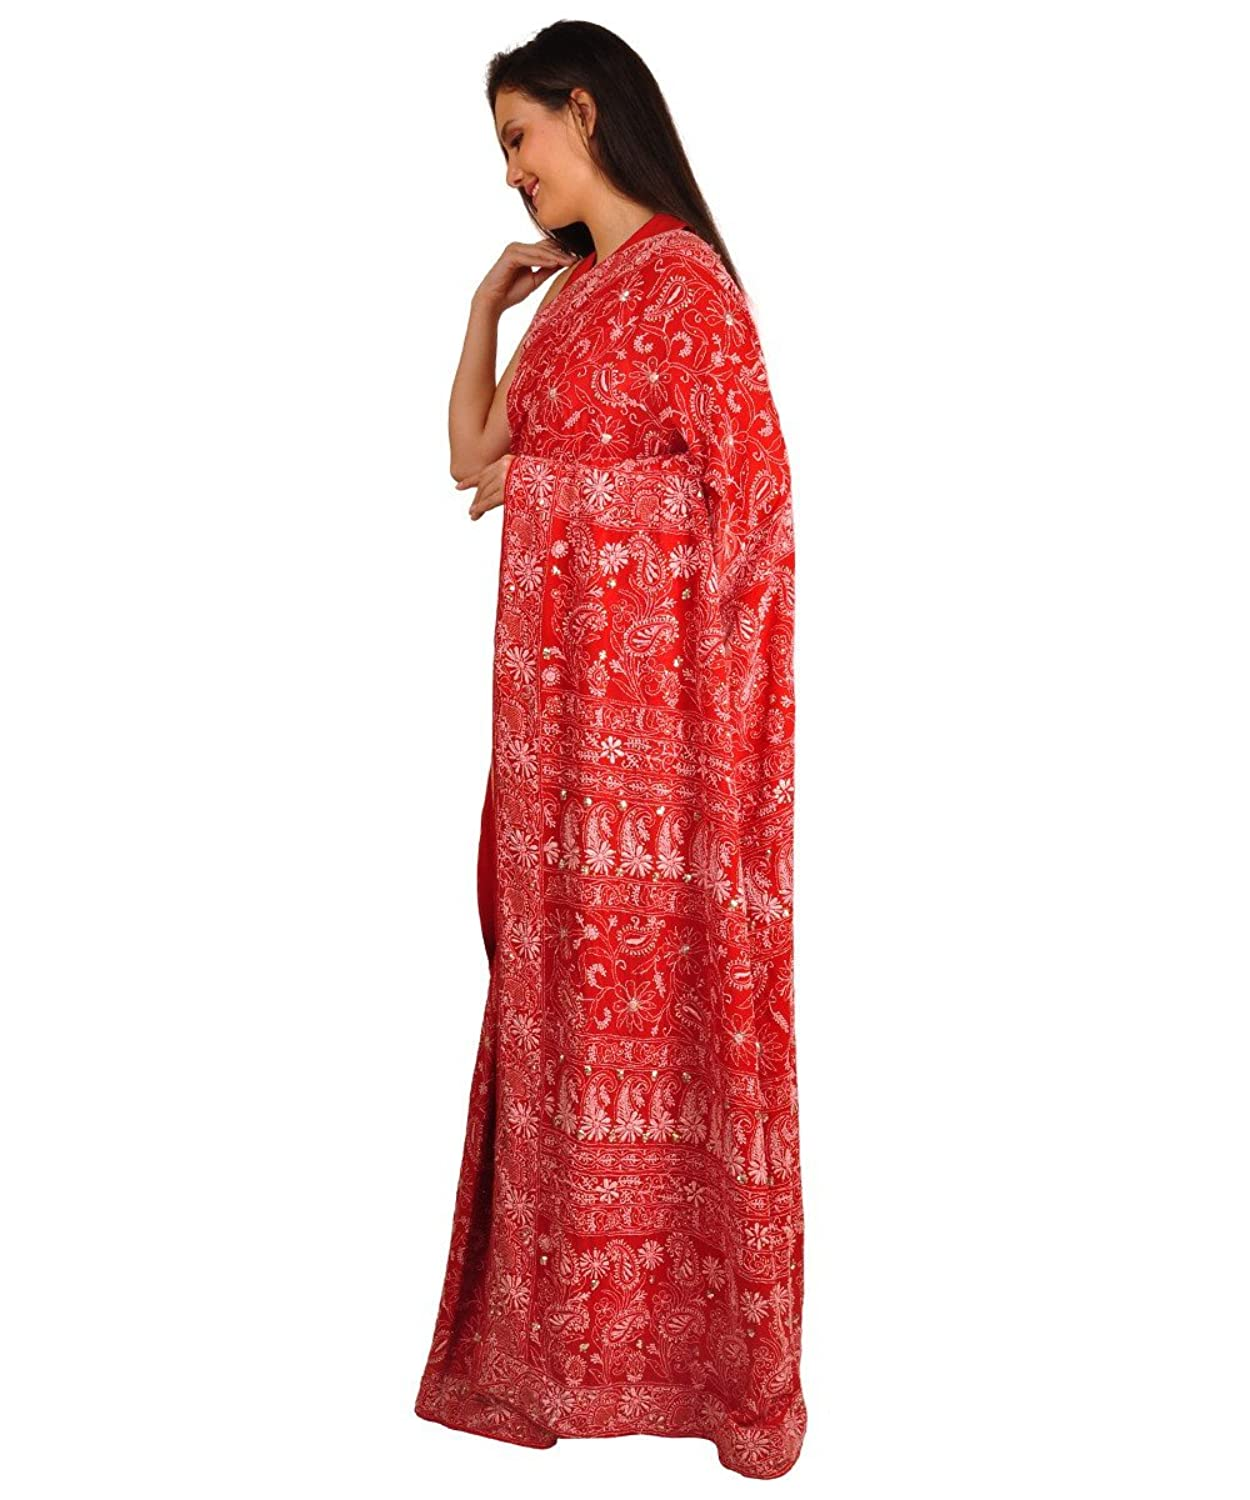 Talking ThreadsGeorgette Chikankari Embroidered Saree available at Amazon for Rs.42000